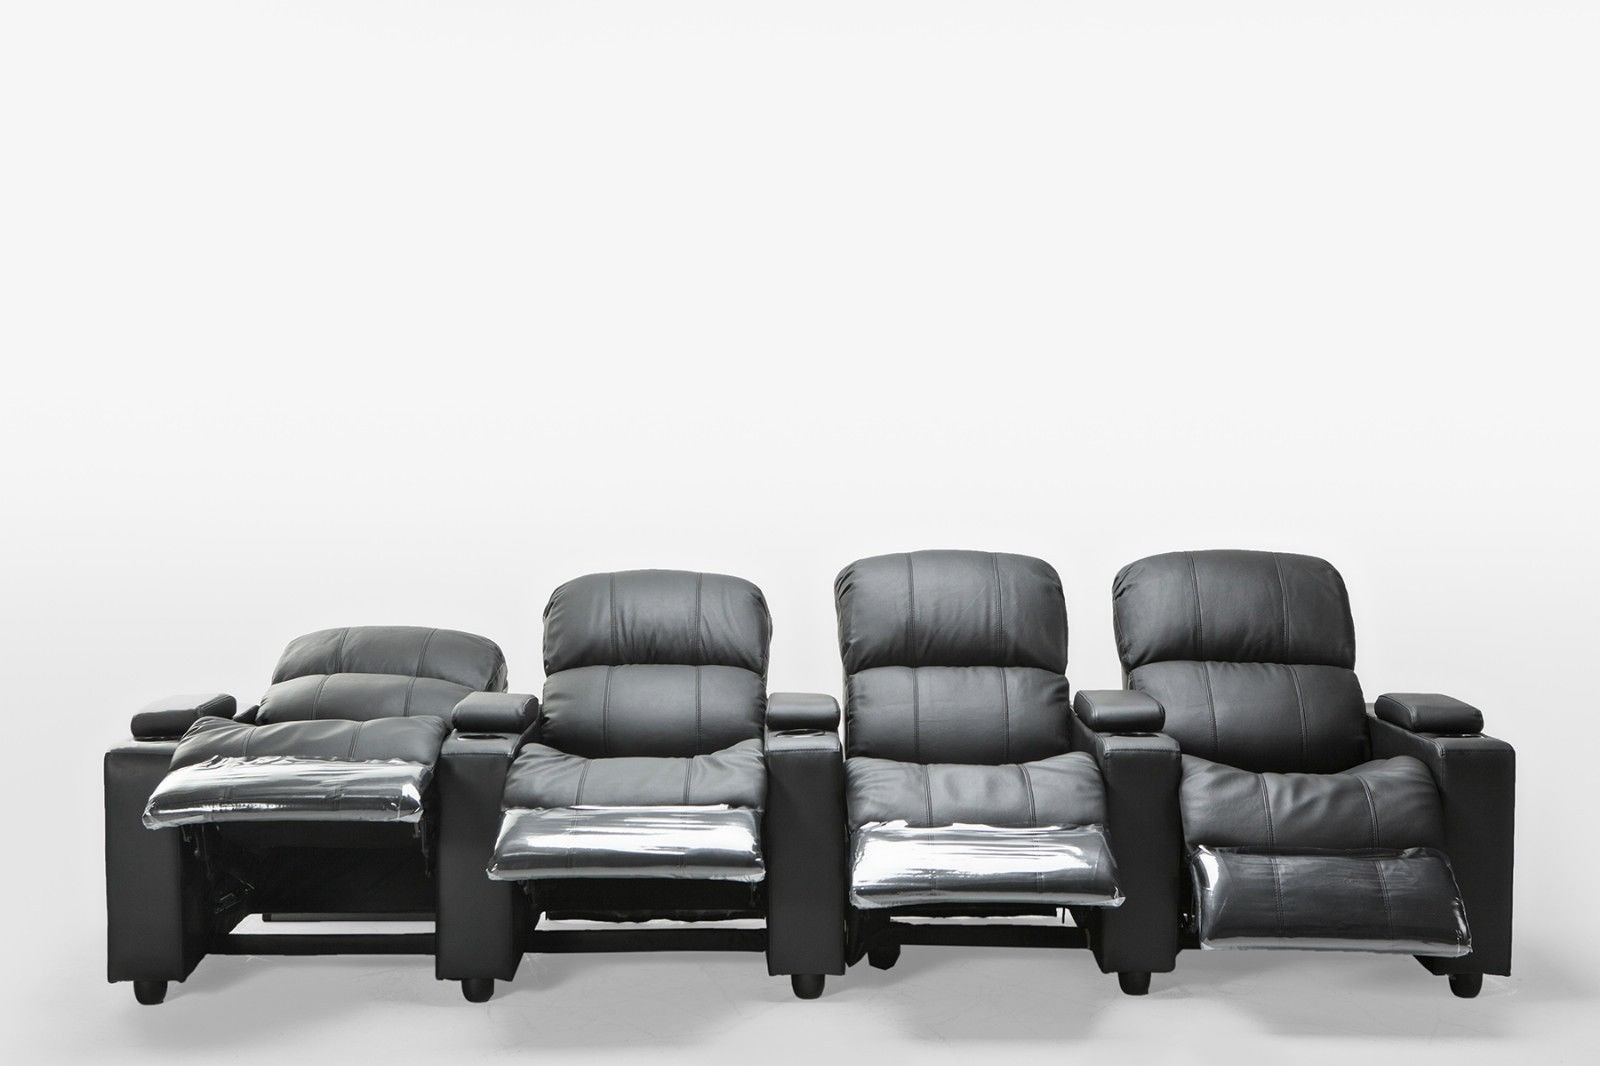 Sophie Black Leather 4 Seater Home Theatre Recliner Lounge